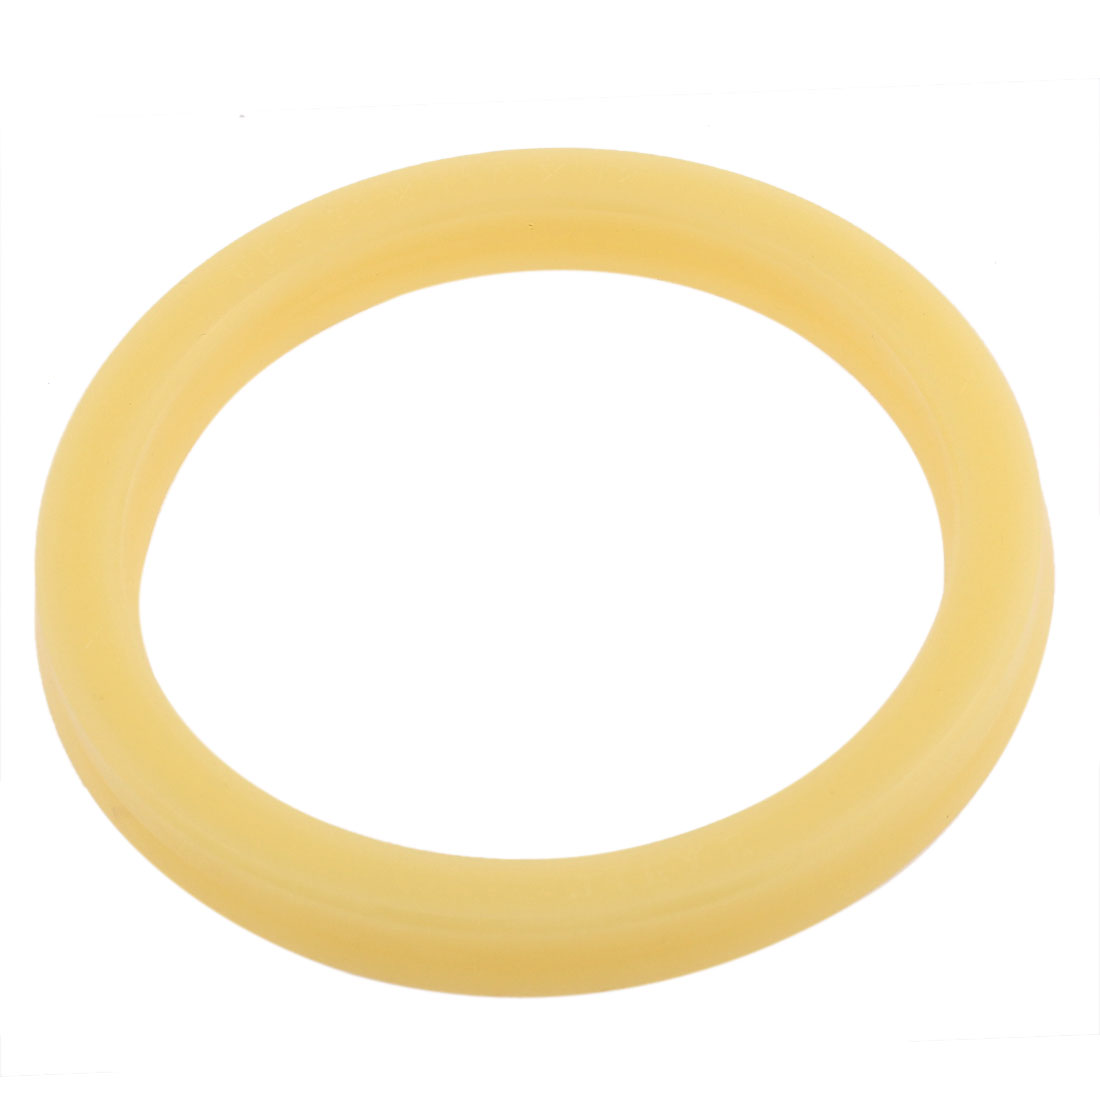 90mm x 110mm x 12mm Round Polyurethane PU Oil Dust Seal Rings Sealing Gasket Washer Beige